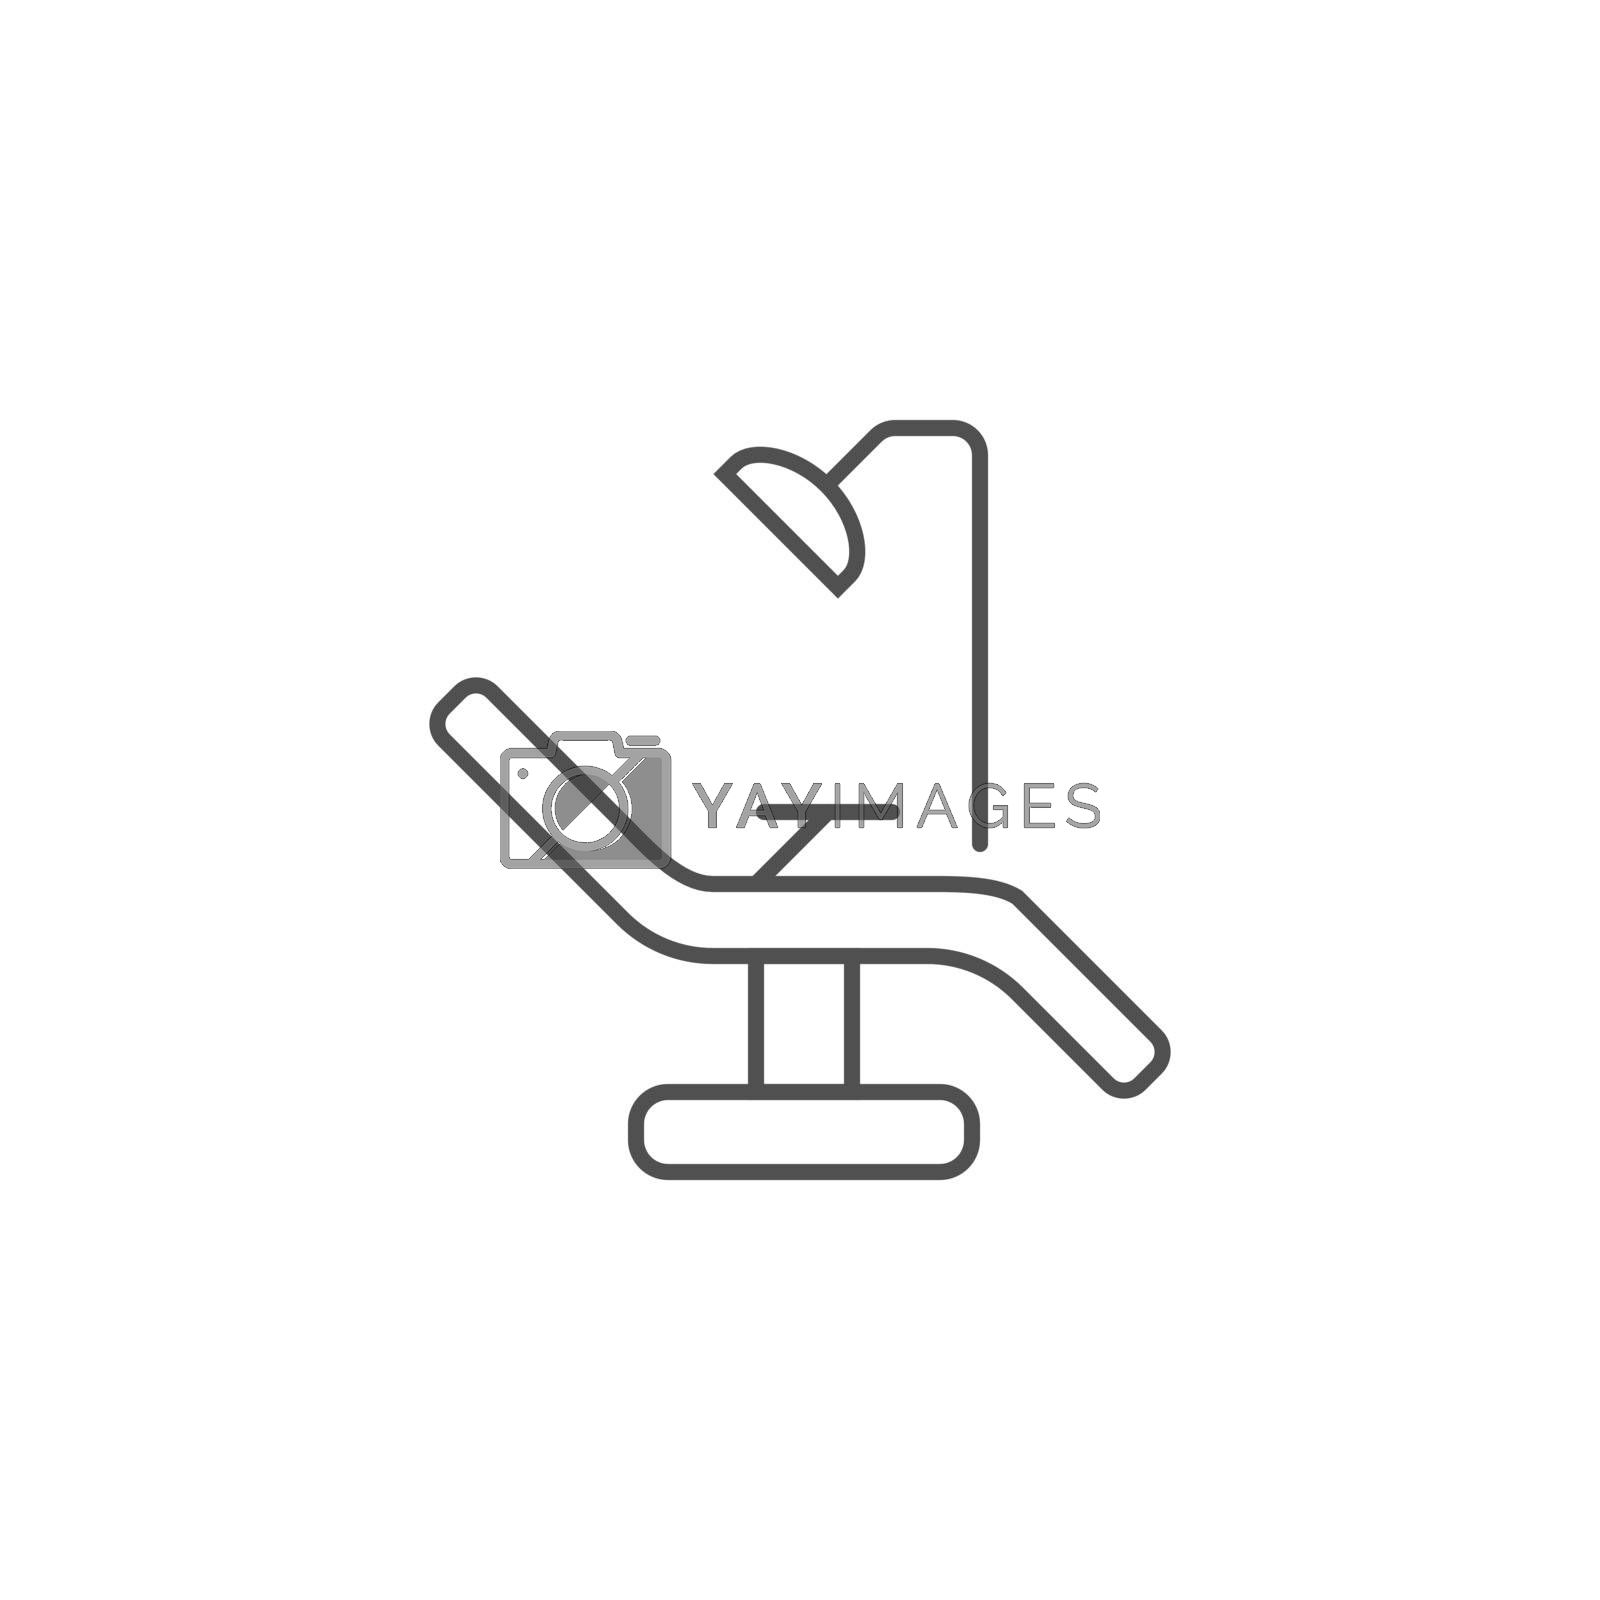 Dental Chair Line Icon. Dental Chair Line Related Vector Line Icon. Isolated on White Background. Editable Stroke.